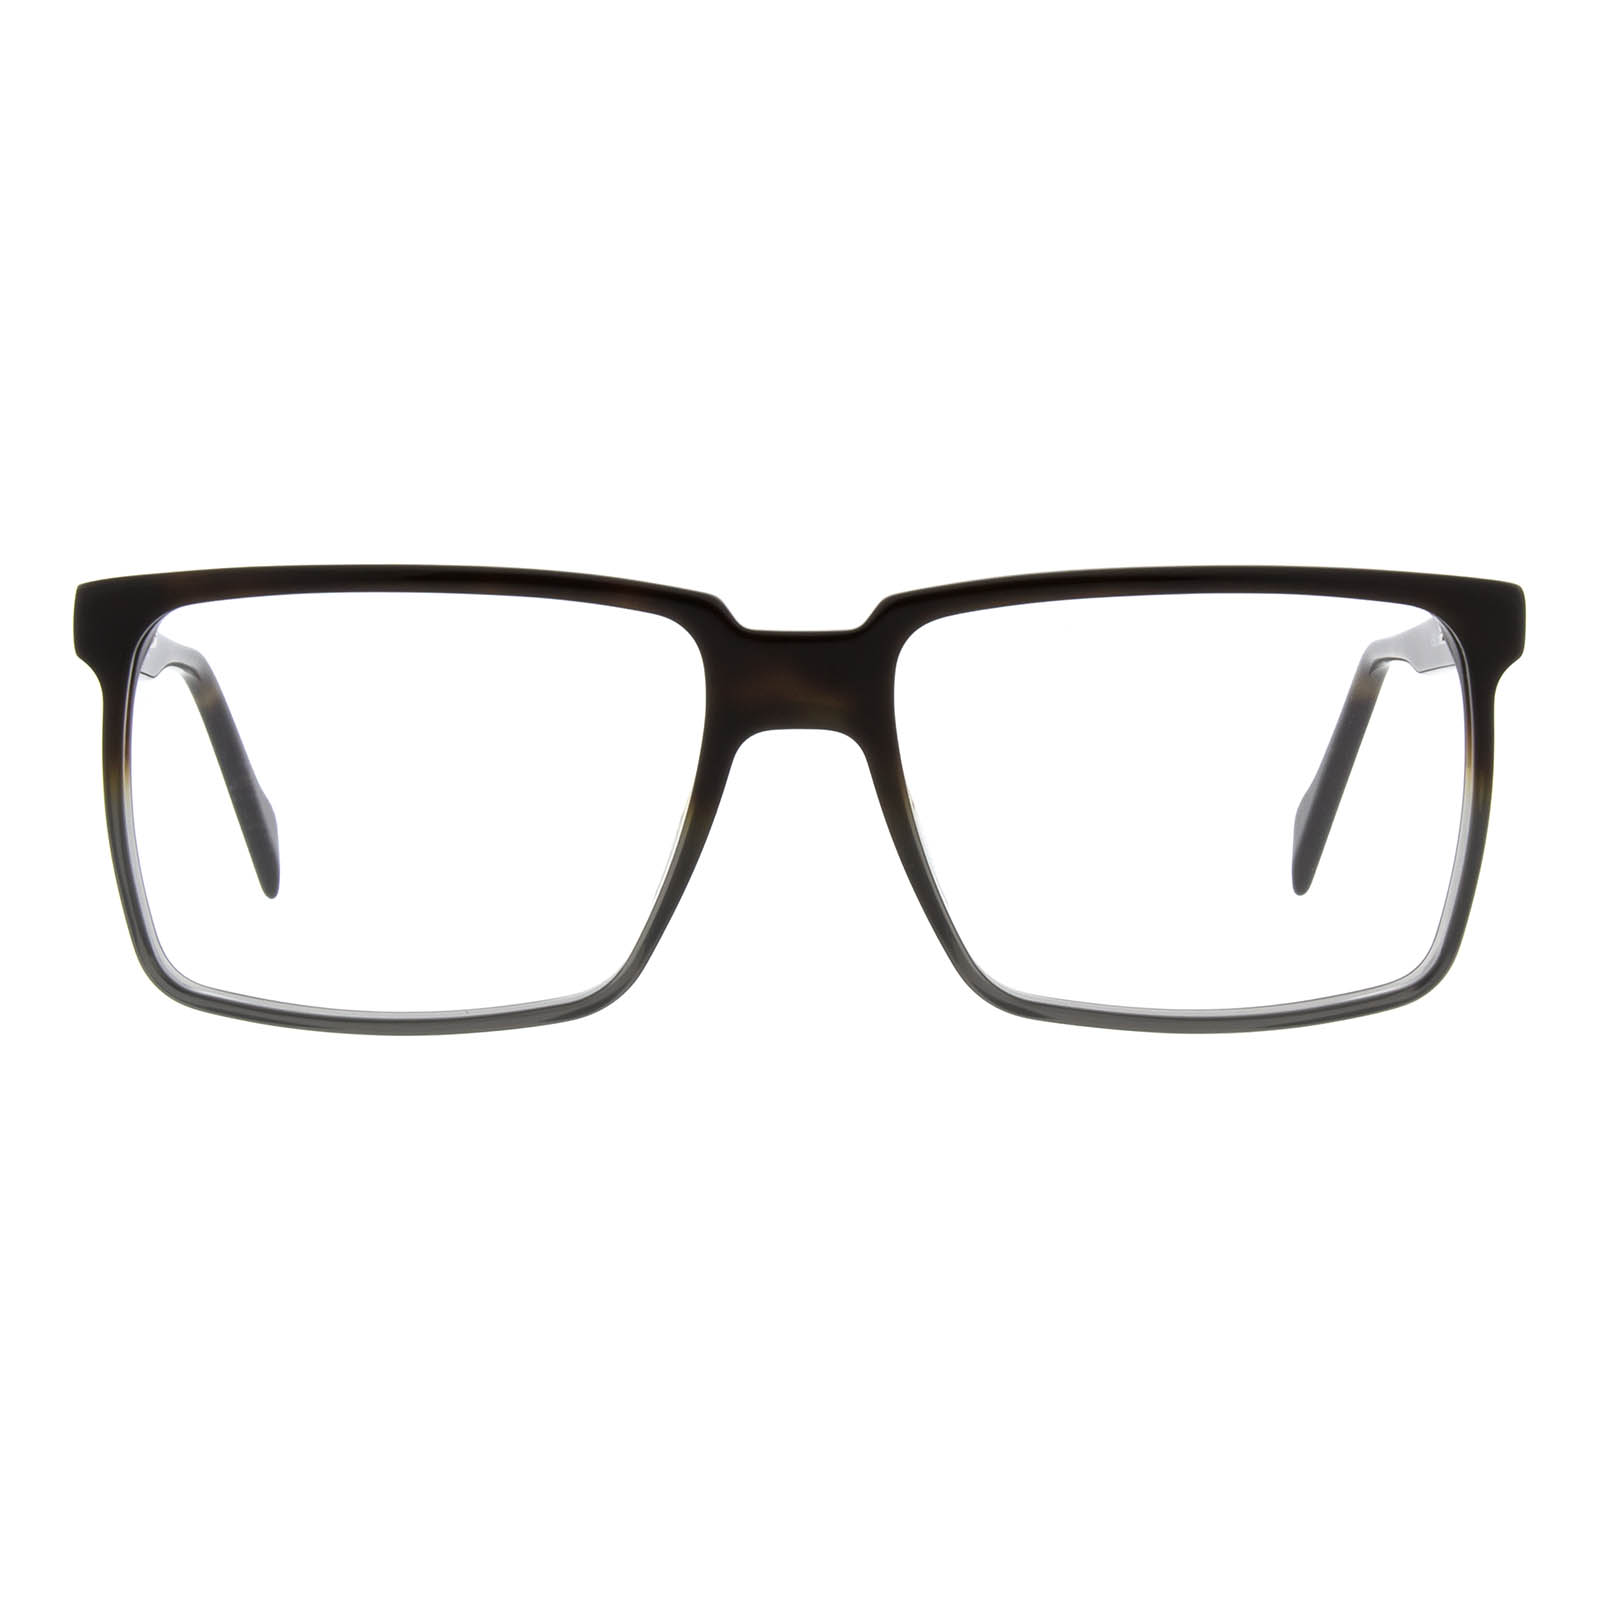 ANDY WOLF EYEWEAR_4592_06_front